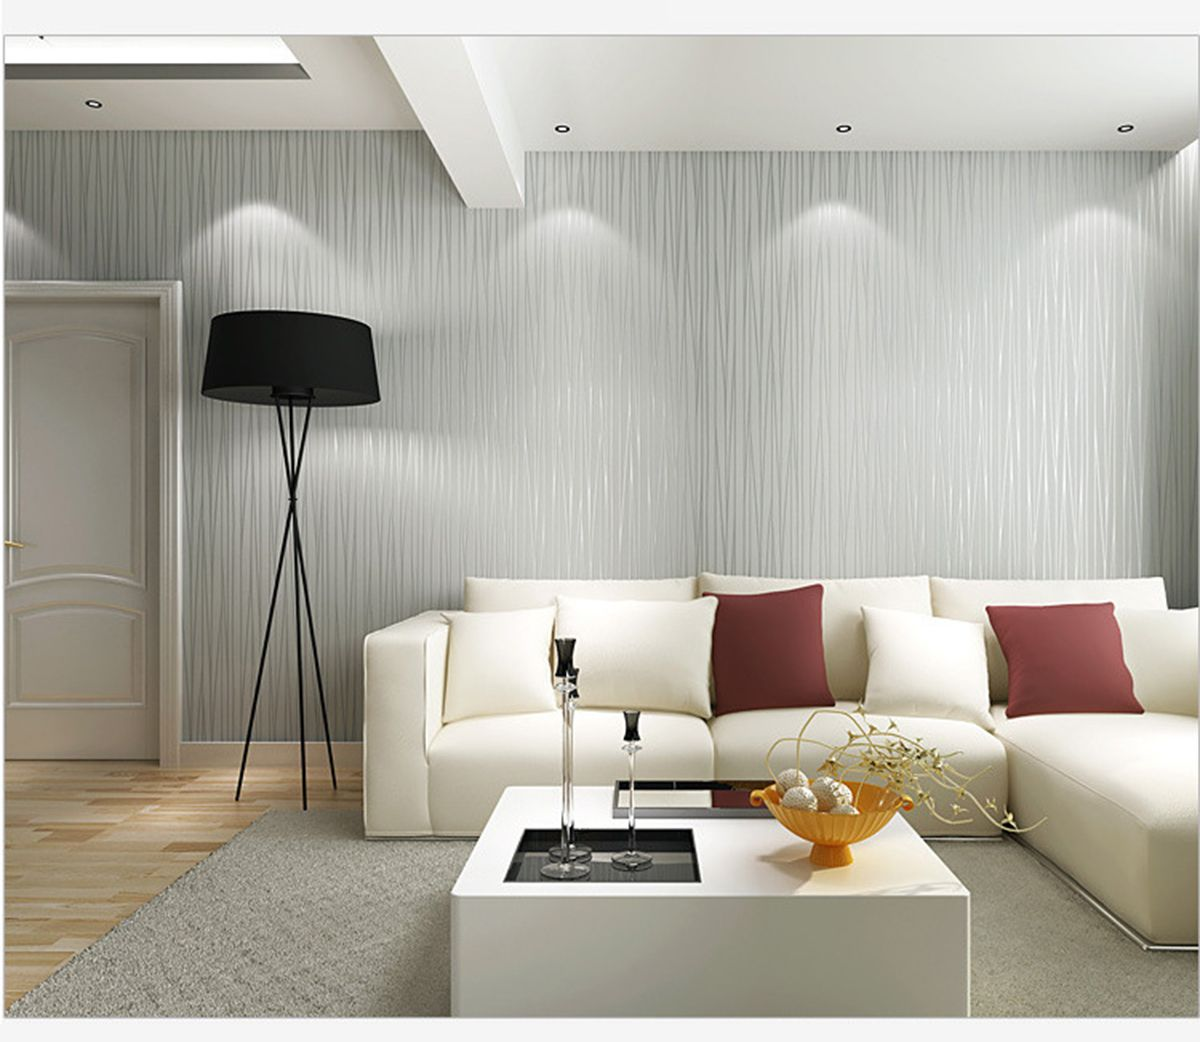 Self Adhesive Nonwoven Flocking Simple Modern Striped Wallpaper For Walls Bedroom Living Room Tv Backgr Living Decor Living Room Tv Striped Wallpaper For Walls